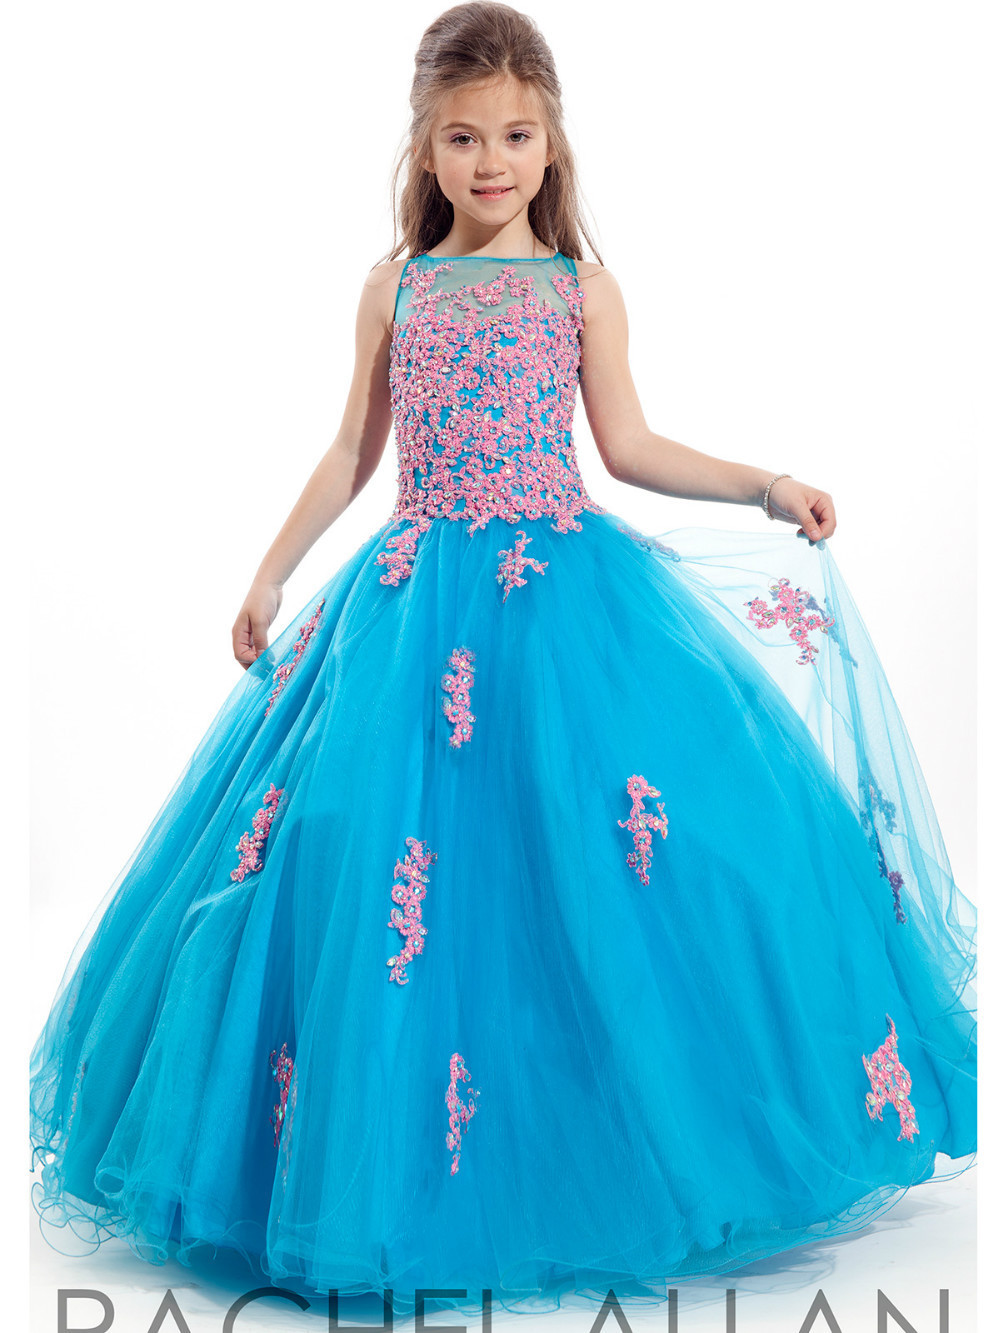 Free shipping on flower girl dresses, shoes & accessories at learn-islam.gq Shop for the best brands. Totally free shipping & returns.